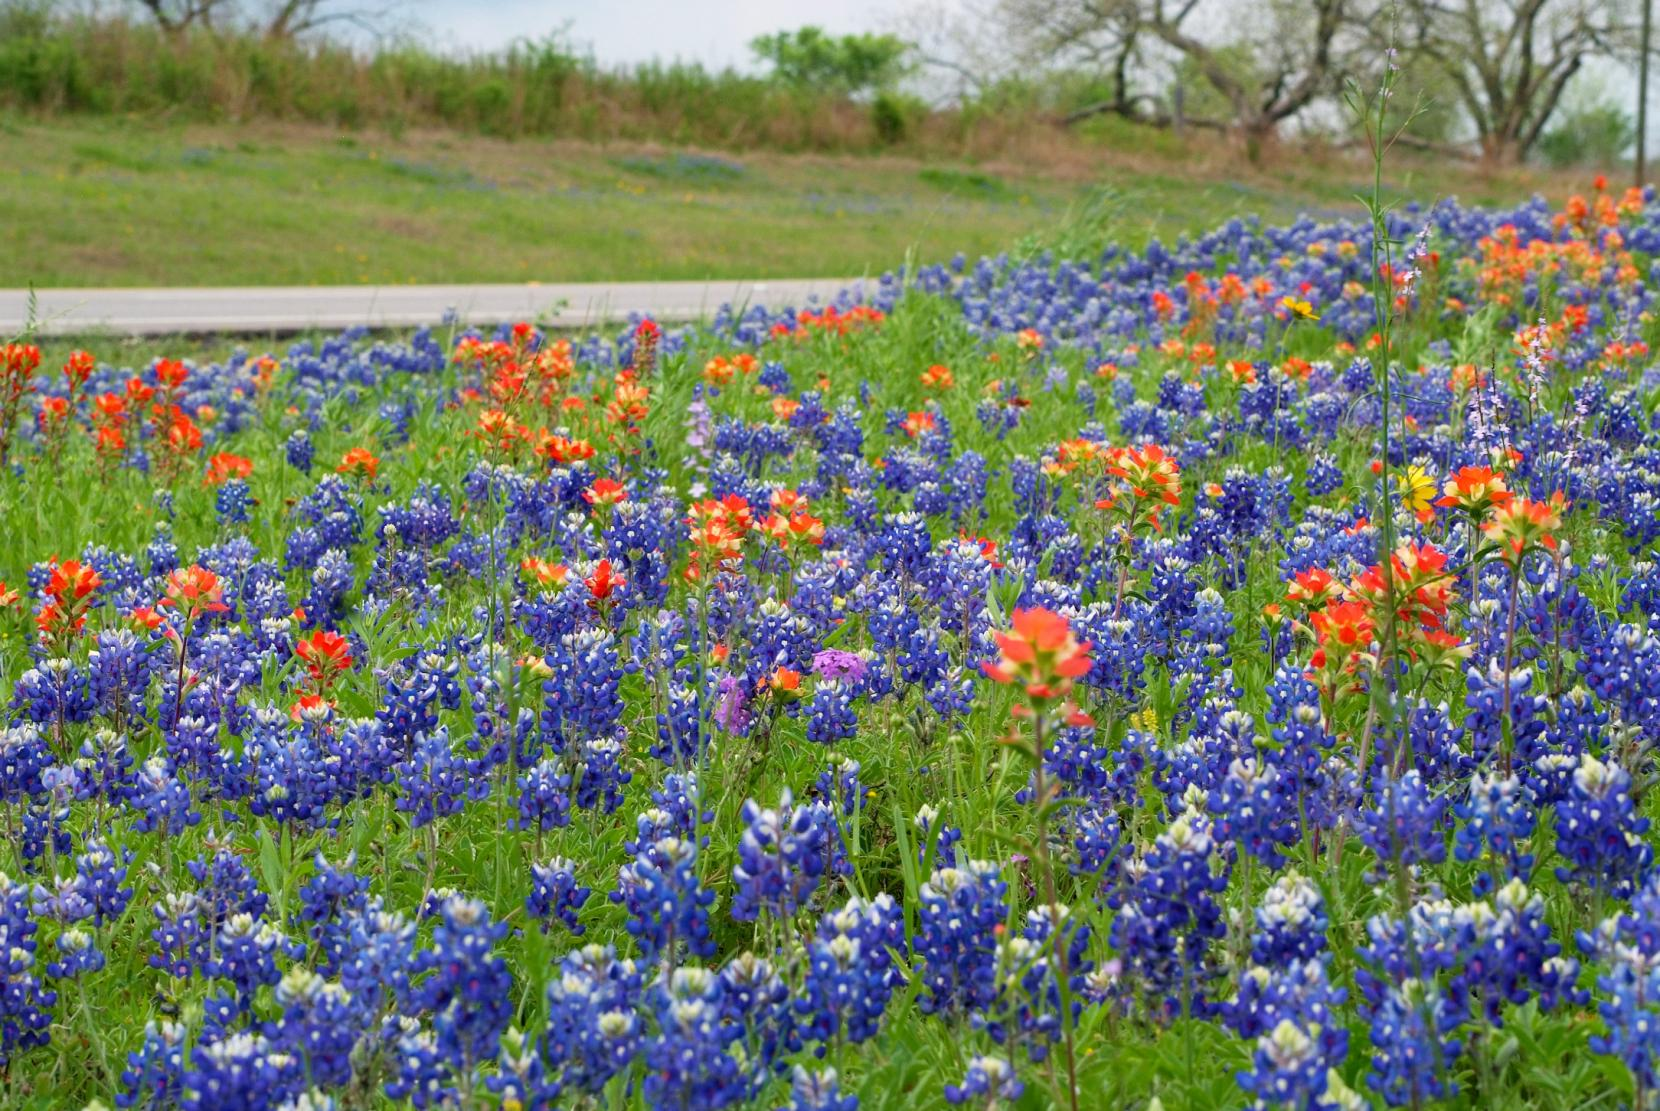 Wildflower Season May Come Earlier This Year Around Texas Experts